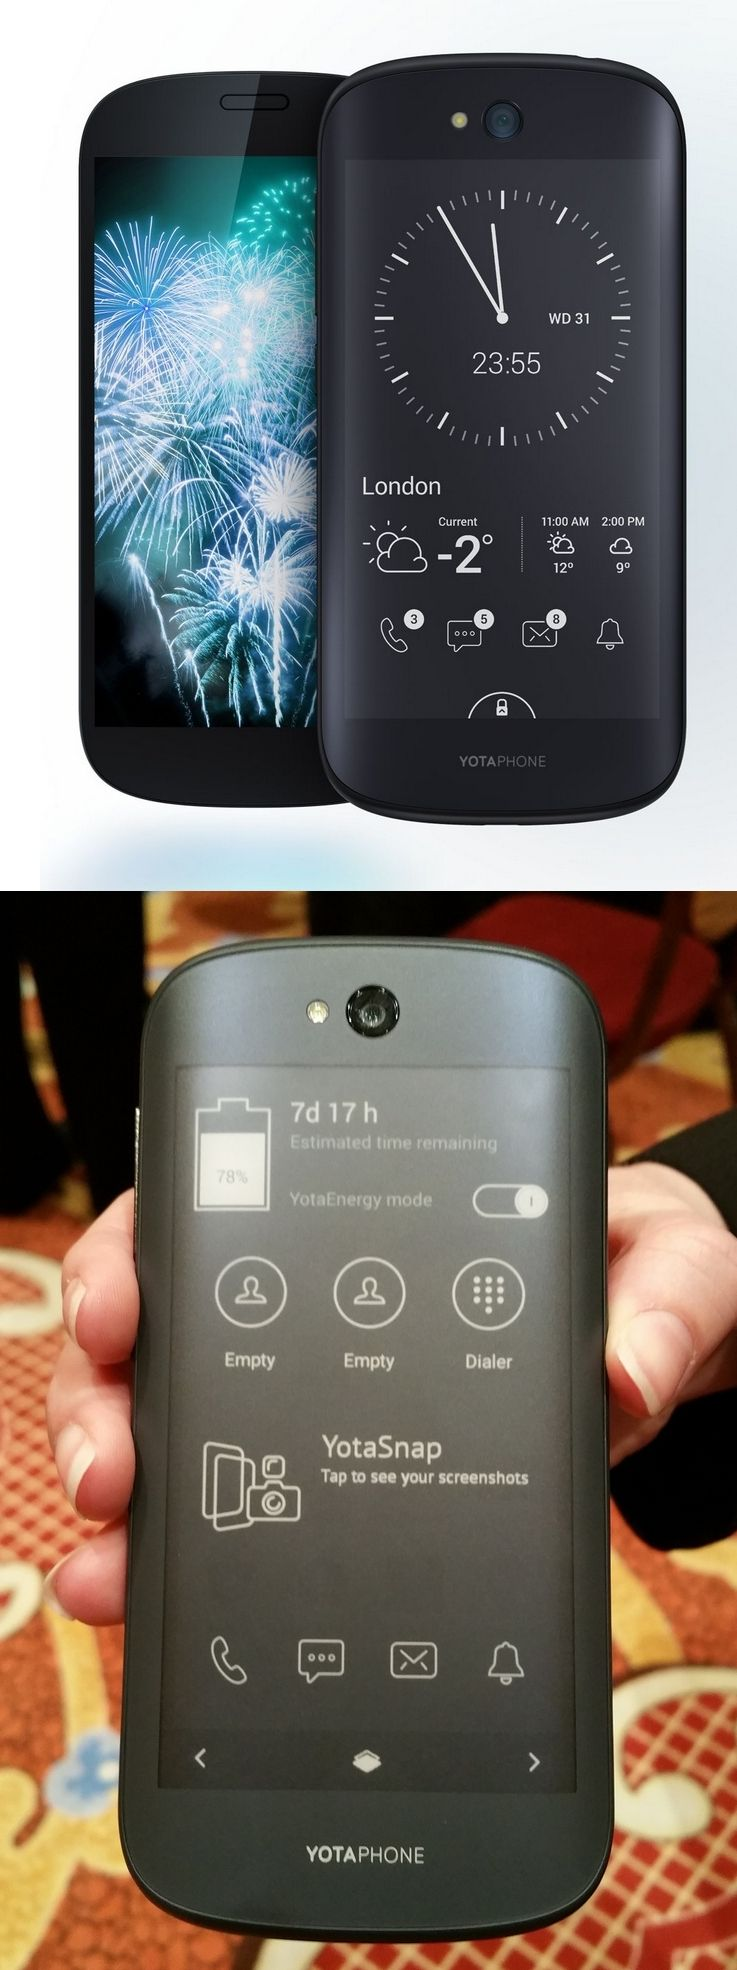 A twofaced phone? Yes indeed! From the front the